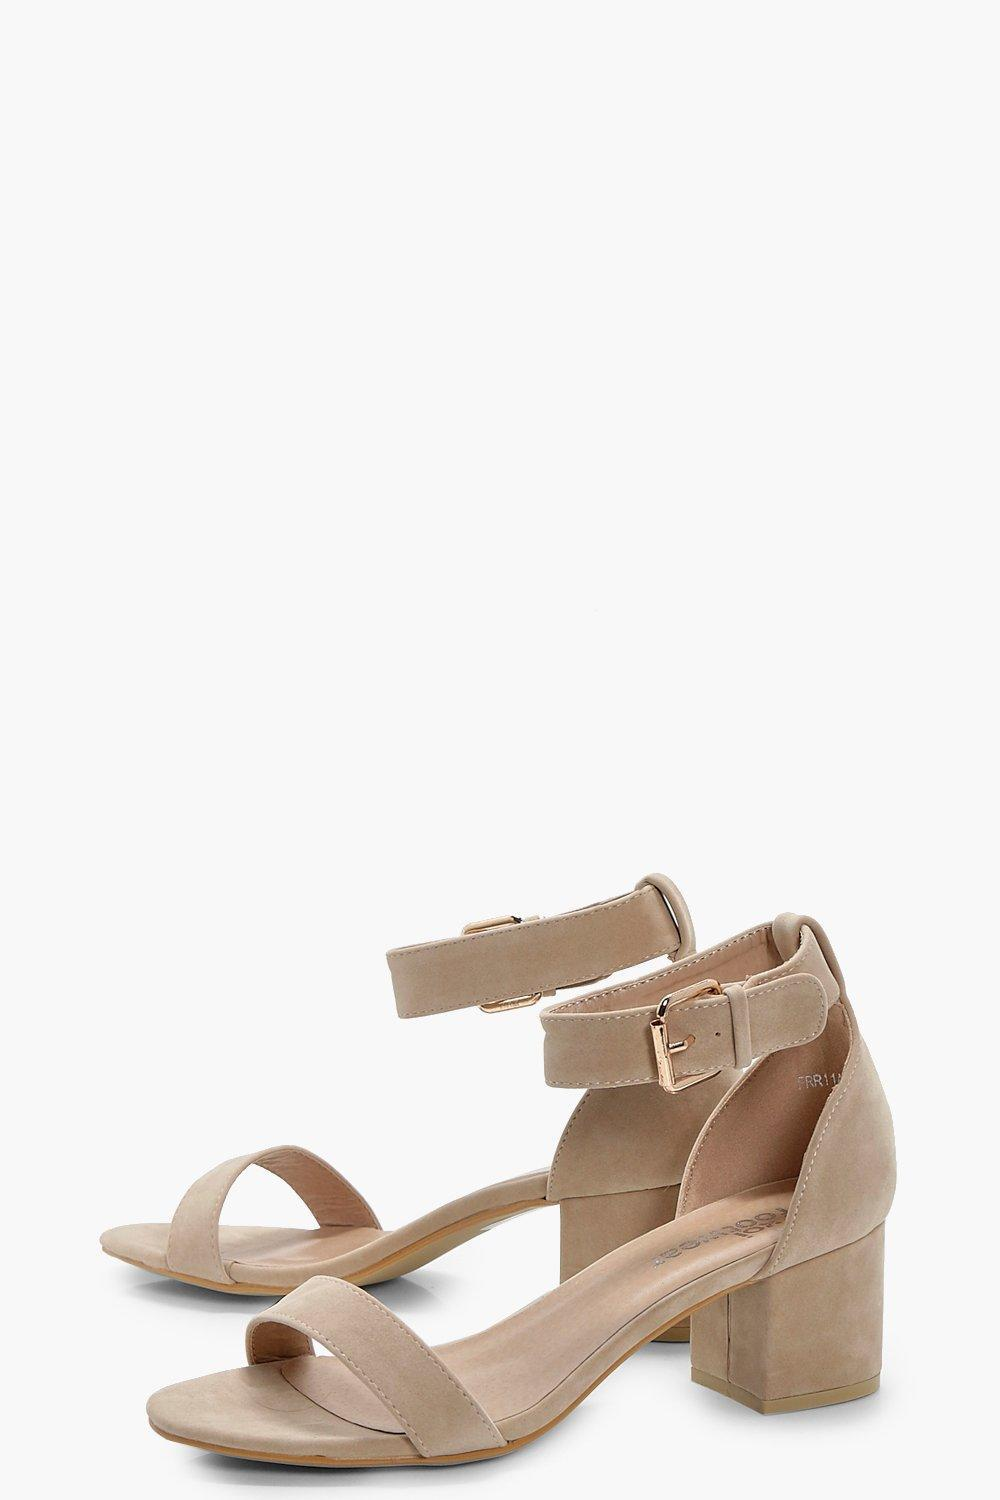 f998888623c4 Lyst - Boohoo Ankle Band Low Block Heel 2 Parts in Natural